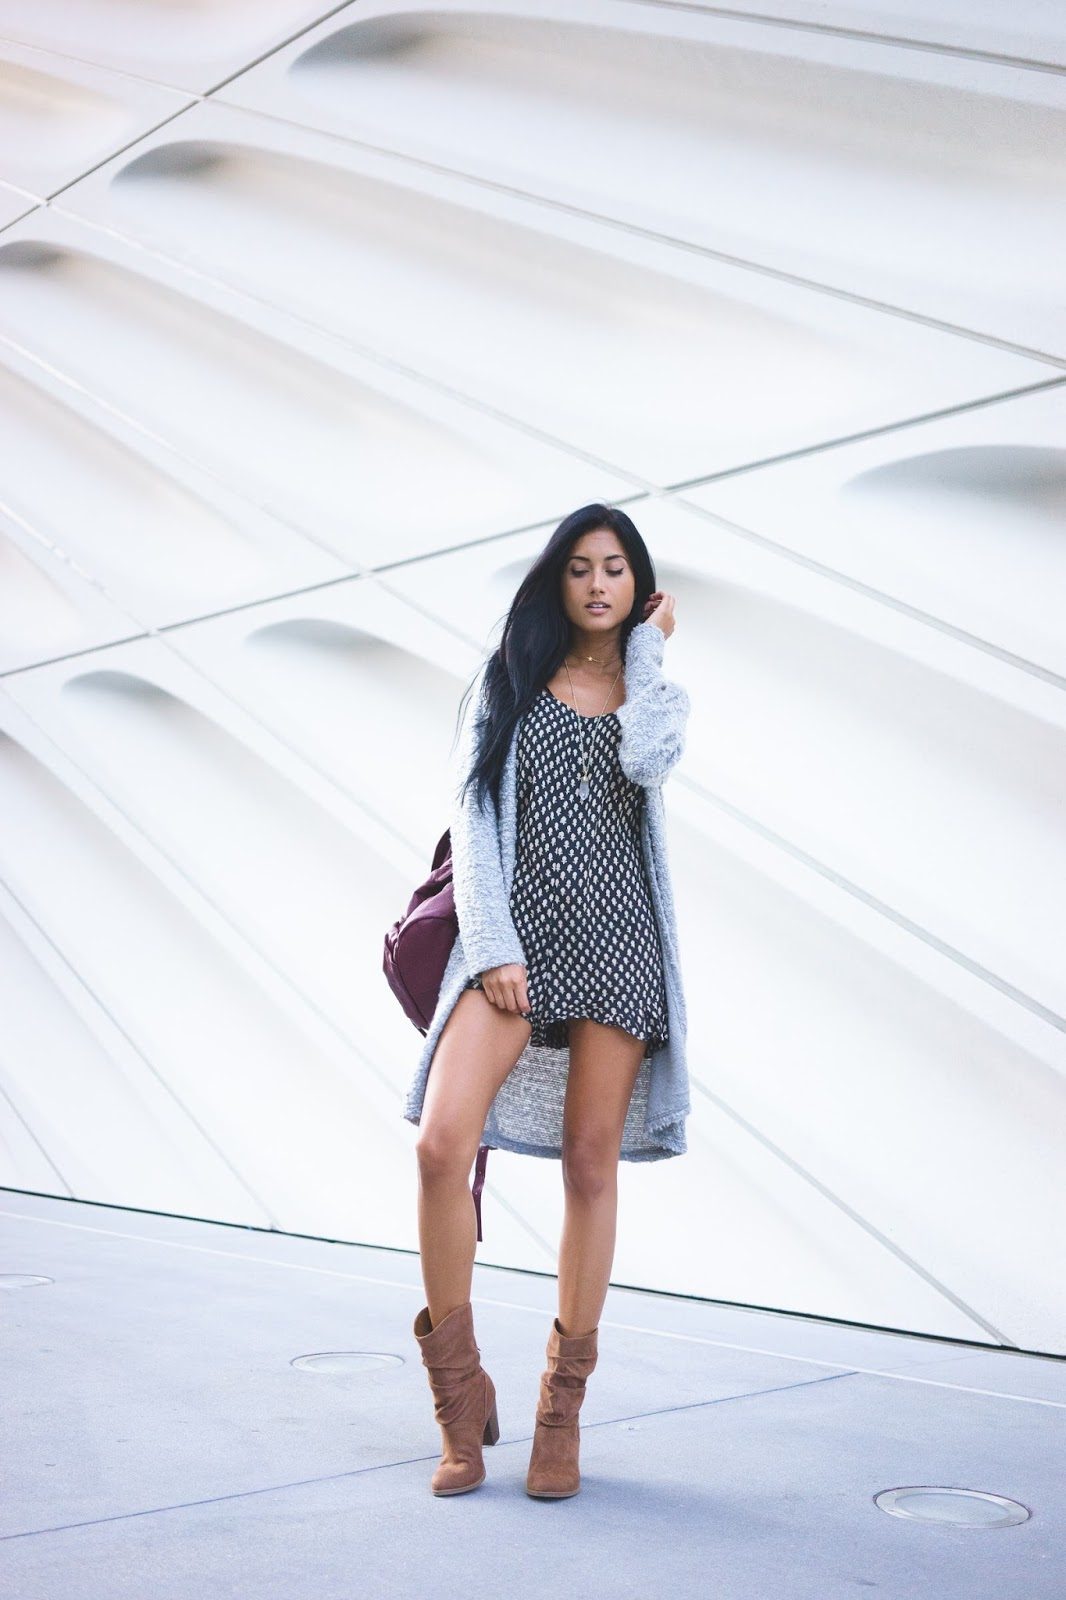 e0ab4e4ee6af Racquel Natasha rocks these cute leather boots with a mini dress and long  cardigan. Boots